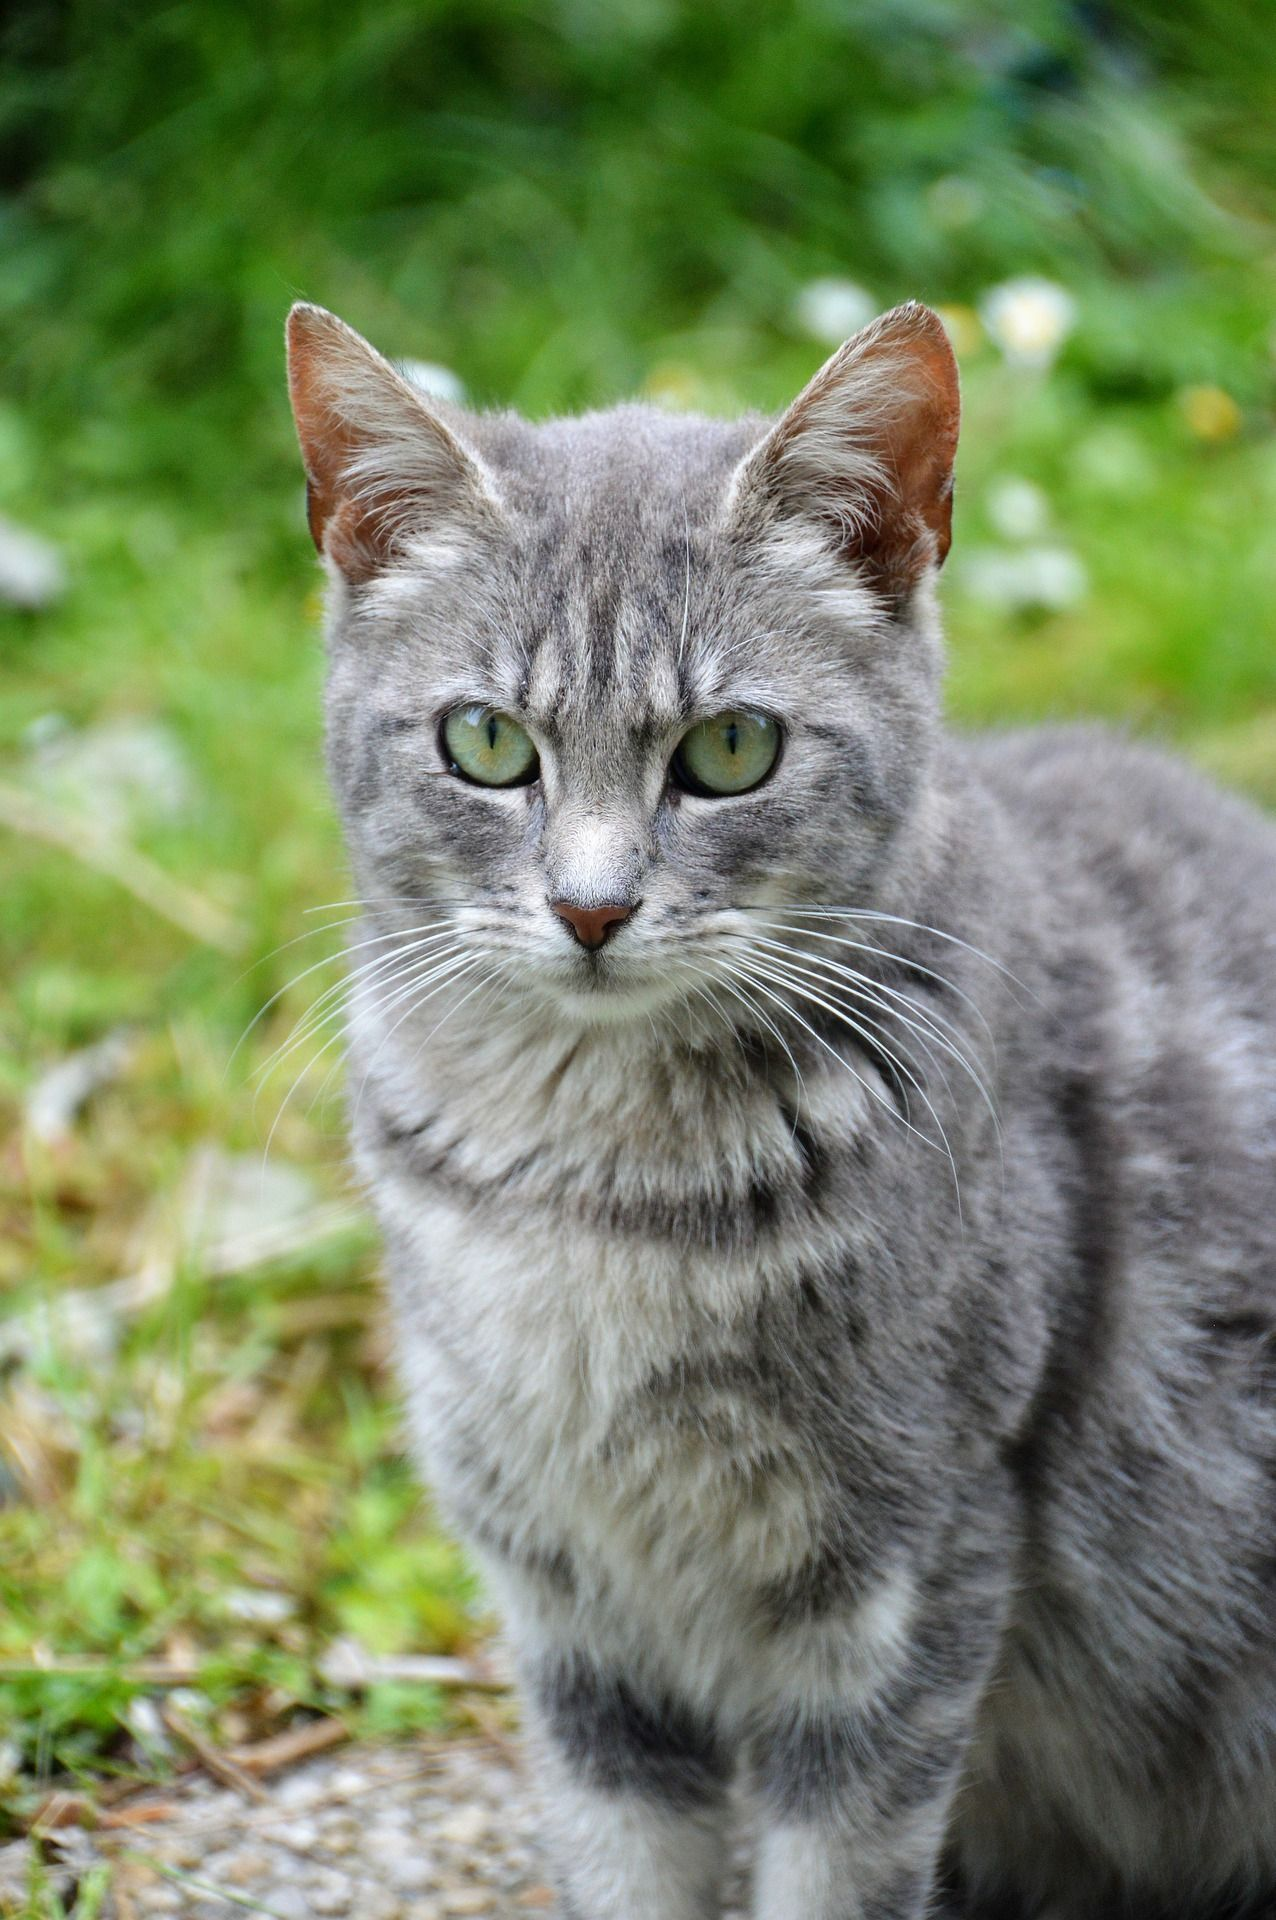 Really Handsome Gray Cat Handsomecat Graycat Graykitty Grey And White Cat Pretty Cats Grey Cats